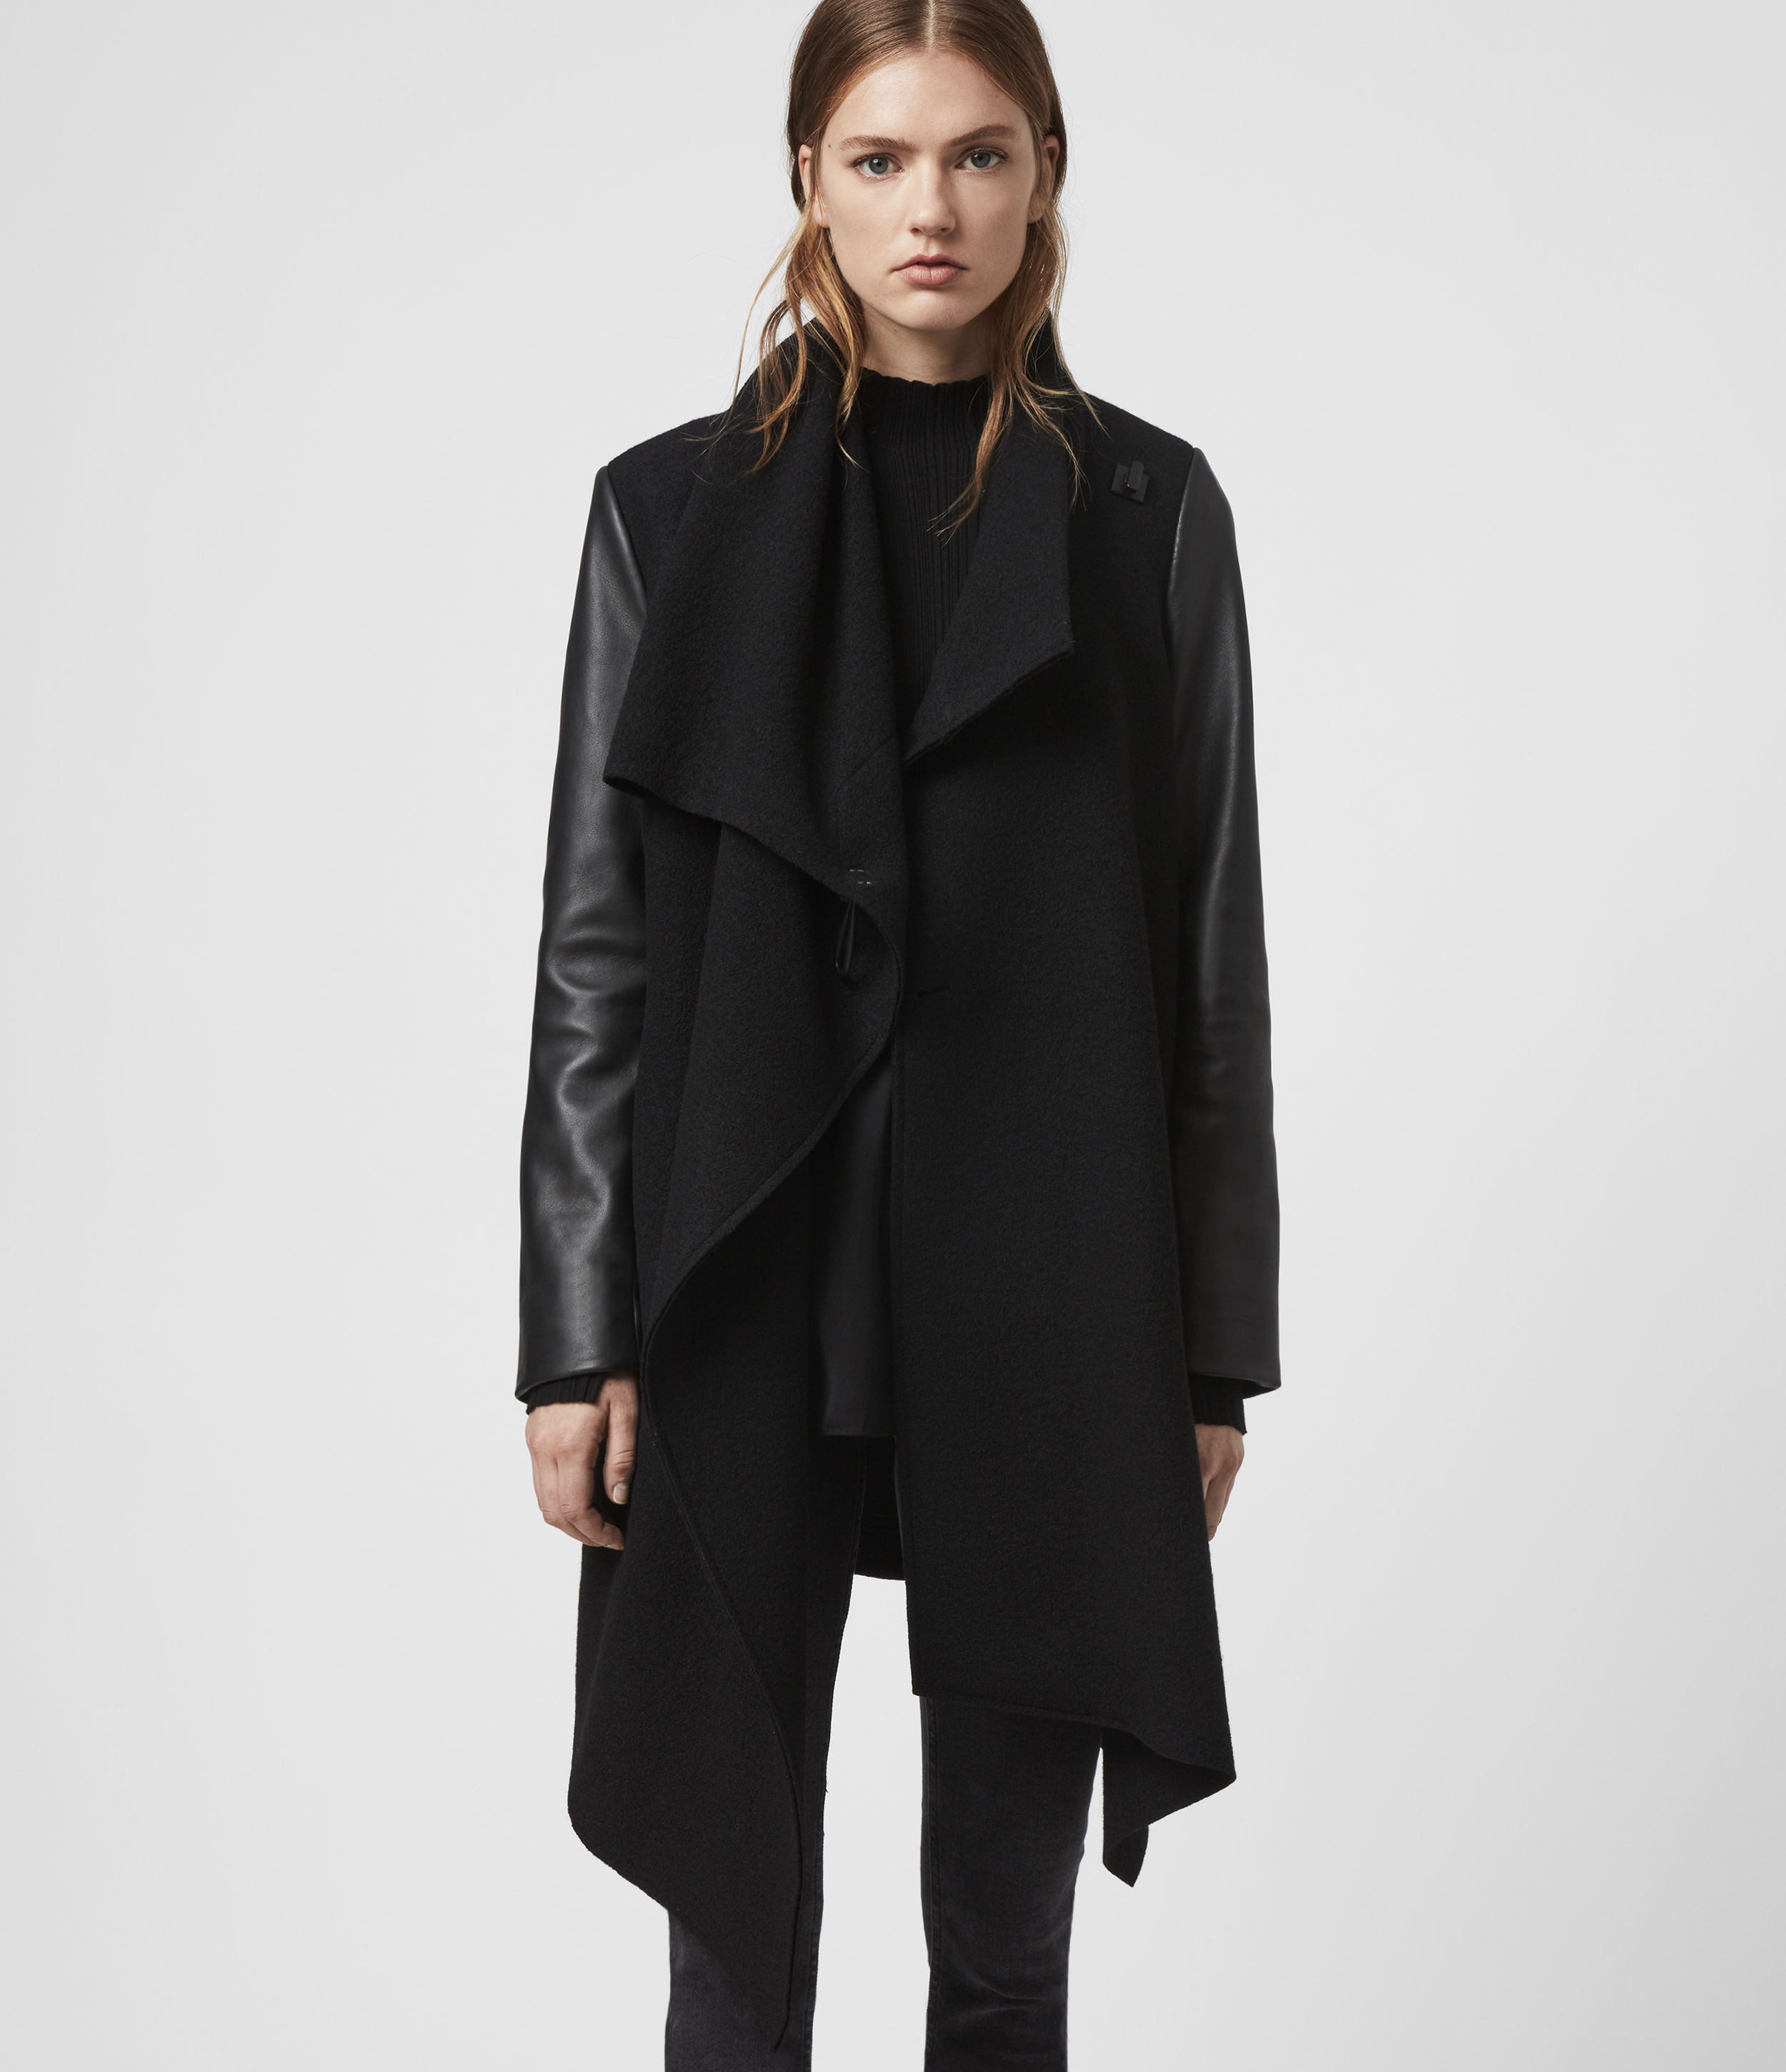 AllSaints Women's Leather Regular Fit Monument Lea Wool And Coat, Black, Size: 4